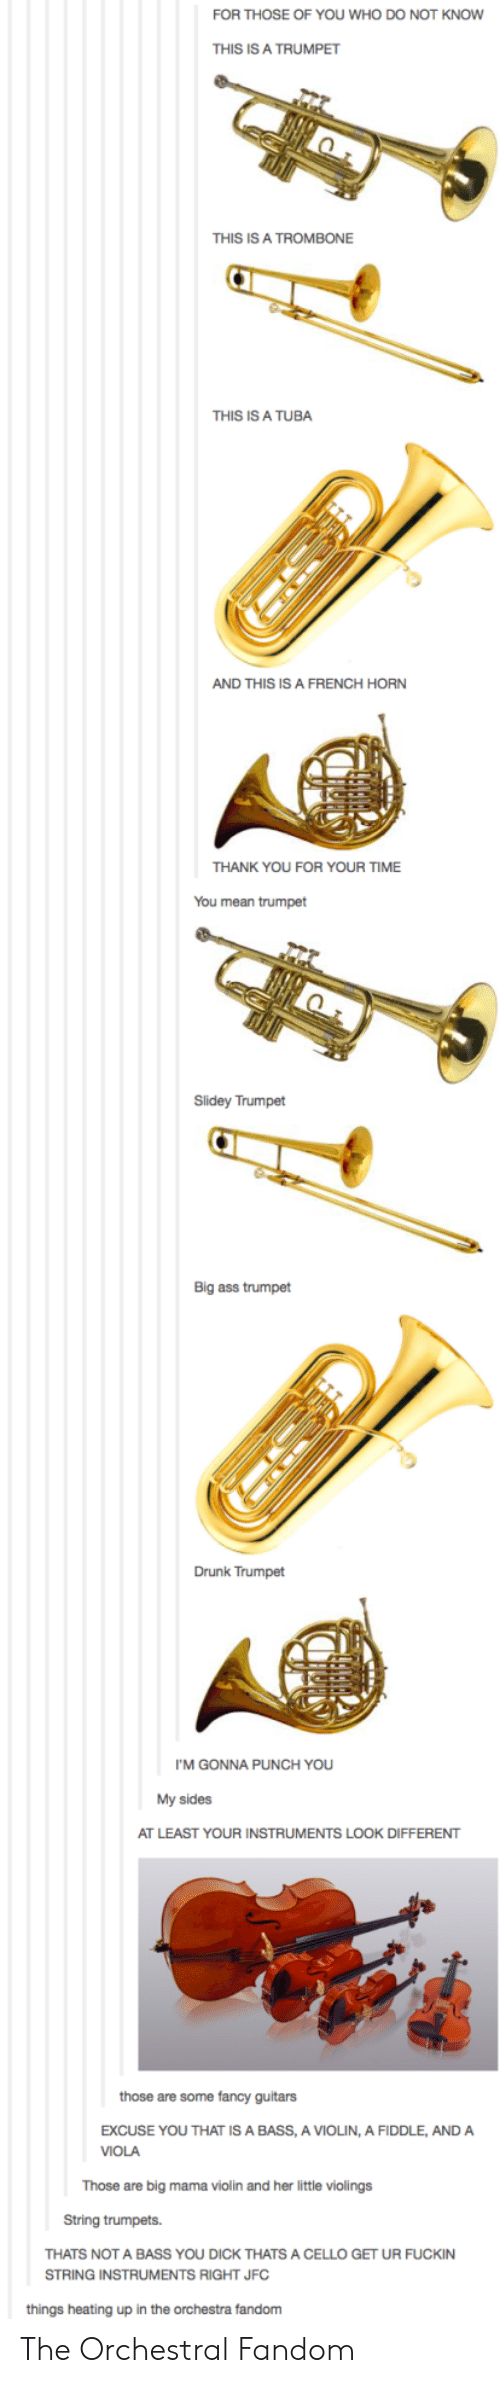 Ass, Drunk, and Thank You: FOR THOSE OF YOU WHO DO NOT KNOW  THIS IS A TRUMPET  THIS IS A TROMBONE  THIS IS A TUBA  AND THIS IS A FRENCH HORN  THANK YOU FOR YOUR TIME  You mean trumpet  Slidey Trumpet  Big ass trumpet  Drunk Trumpet  I'M GONNA PUNCH YOU  My sides  AT LEAST YOUR INSTRUMENTS LOOK DIFFERENT  those are some fancy guitars  EXCUSE YOU THAT IS A BASS, A VIOLIN, A FIDDLE, ANDA  VIOLA  Those are big mama violin and her little violings  String trumpets.  THATS NOT A BASS YOU DICK THATS A CELLO GET UR FUCKIN  STRING INSTRUMENTS RIGHT JFC  things heating up in the orchestra fandom The Orchestral Fandom